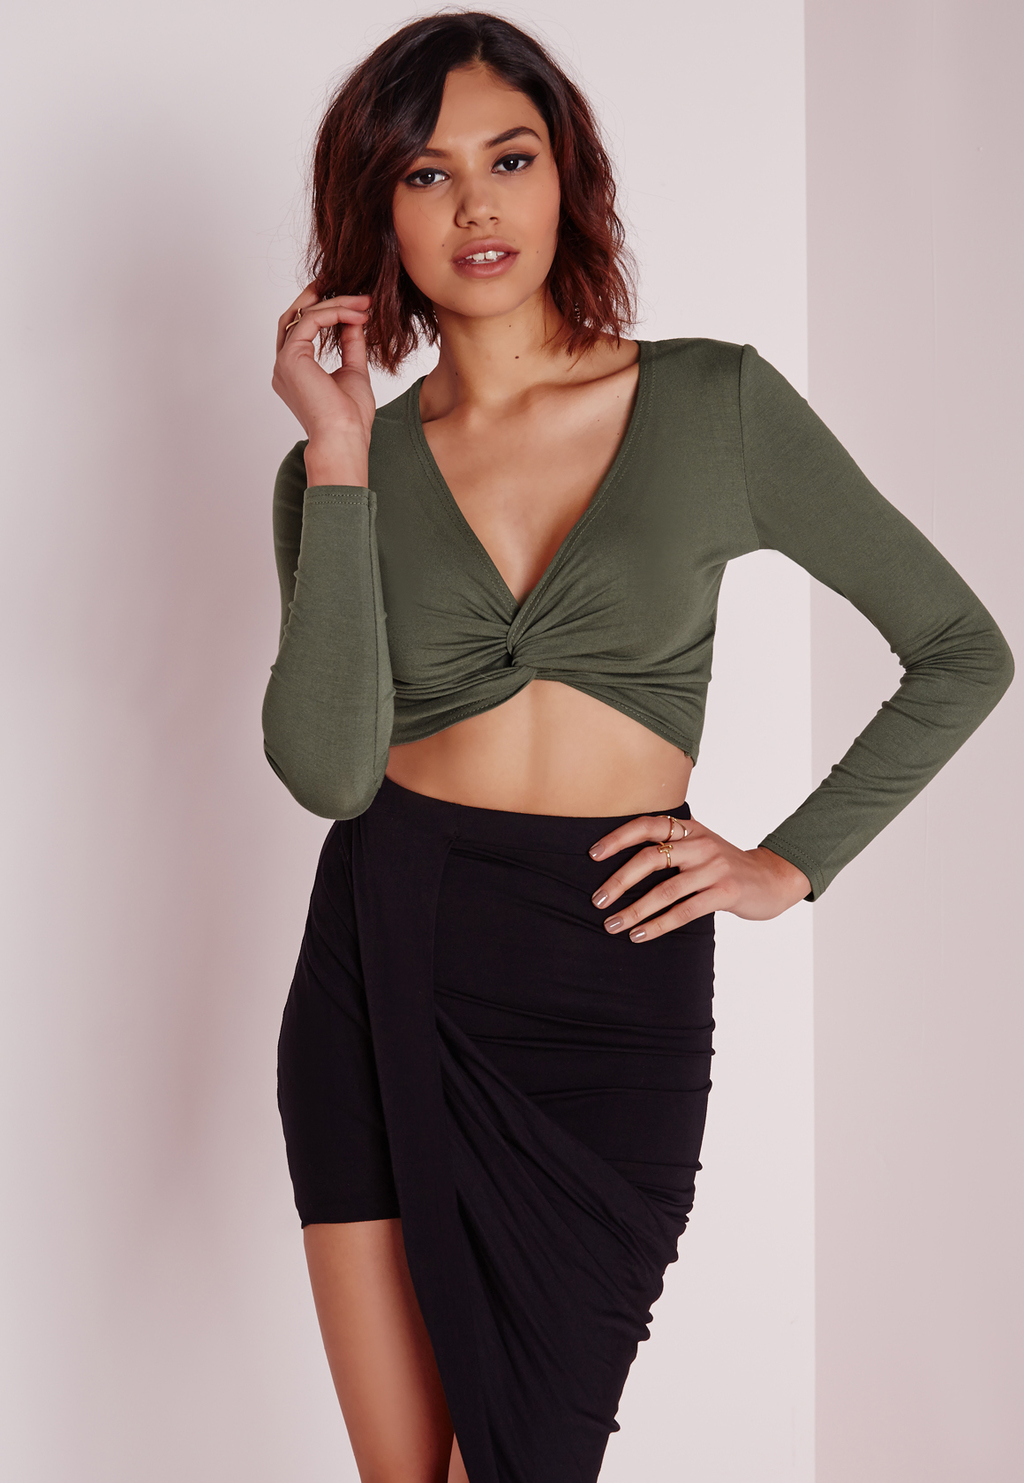 Twist Front Detail Crop Top Khaki, Beige - neckline: v-neck; pattern: plain; length: cropped; predominant colour: khaki; occasions: casual, evening; style: top; fibres: viscose/rayon - stretch; fit: body skimming; sleeve length: long sleeve; sleeve style: standard; texture group: jersey - stretchy/drapey; season: a/w 2015